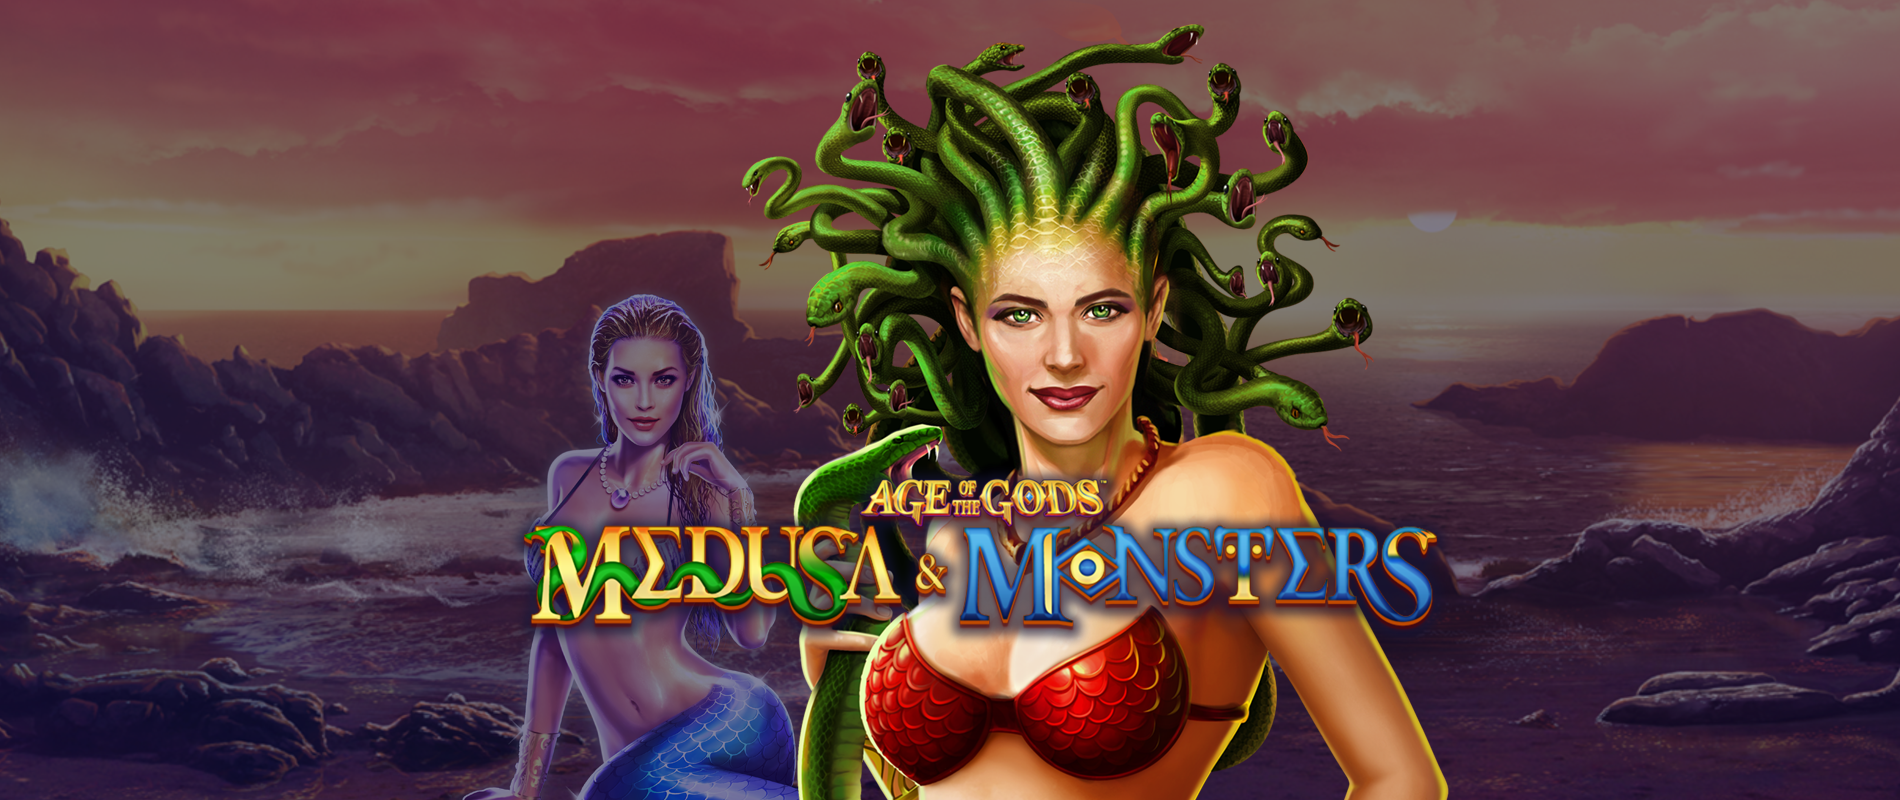 Nowe Gry Age of the Gods Medusa & Monsters